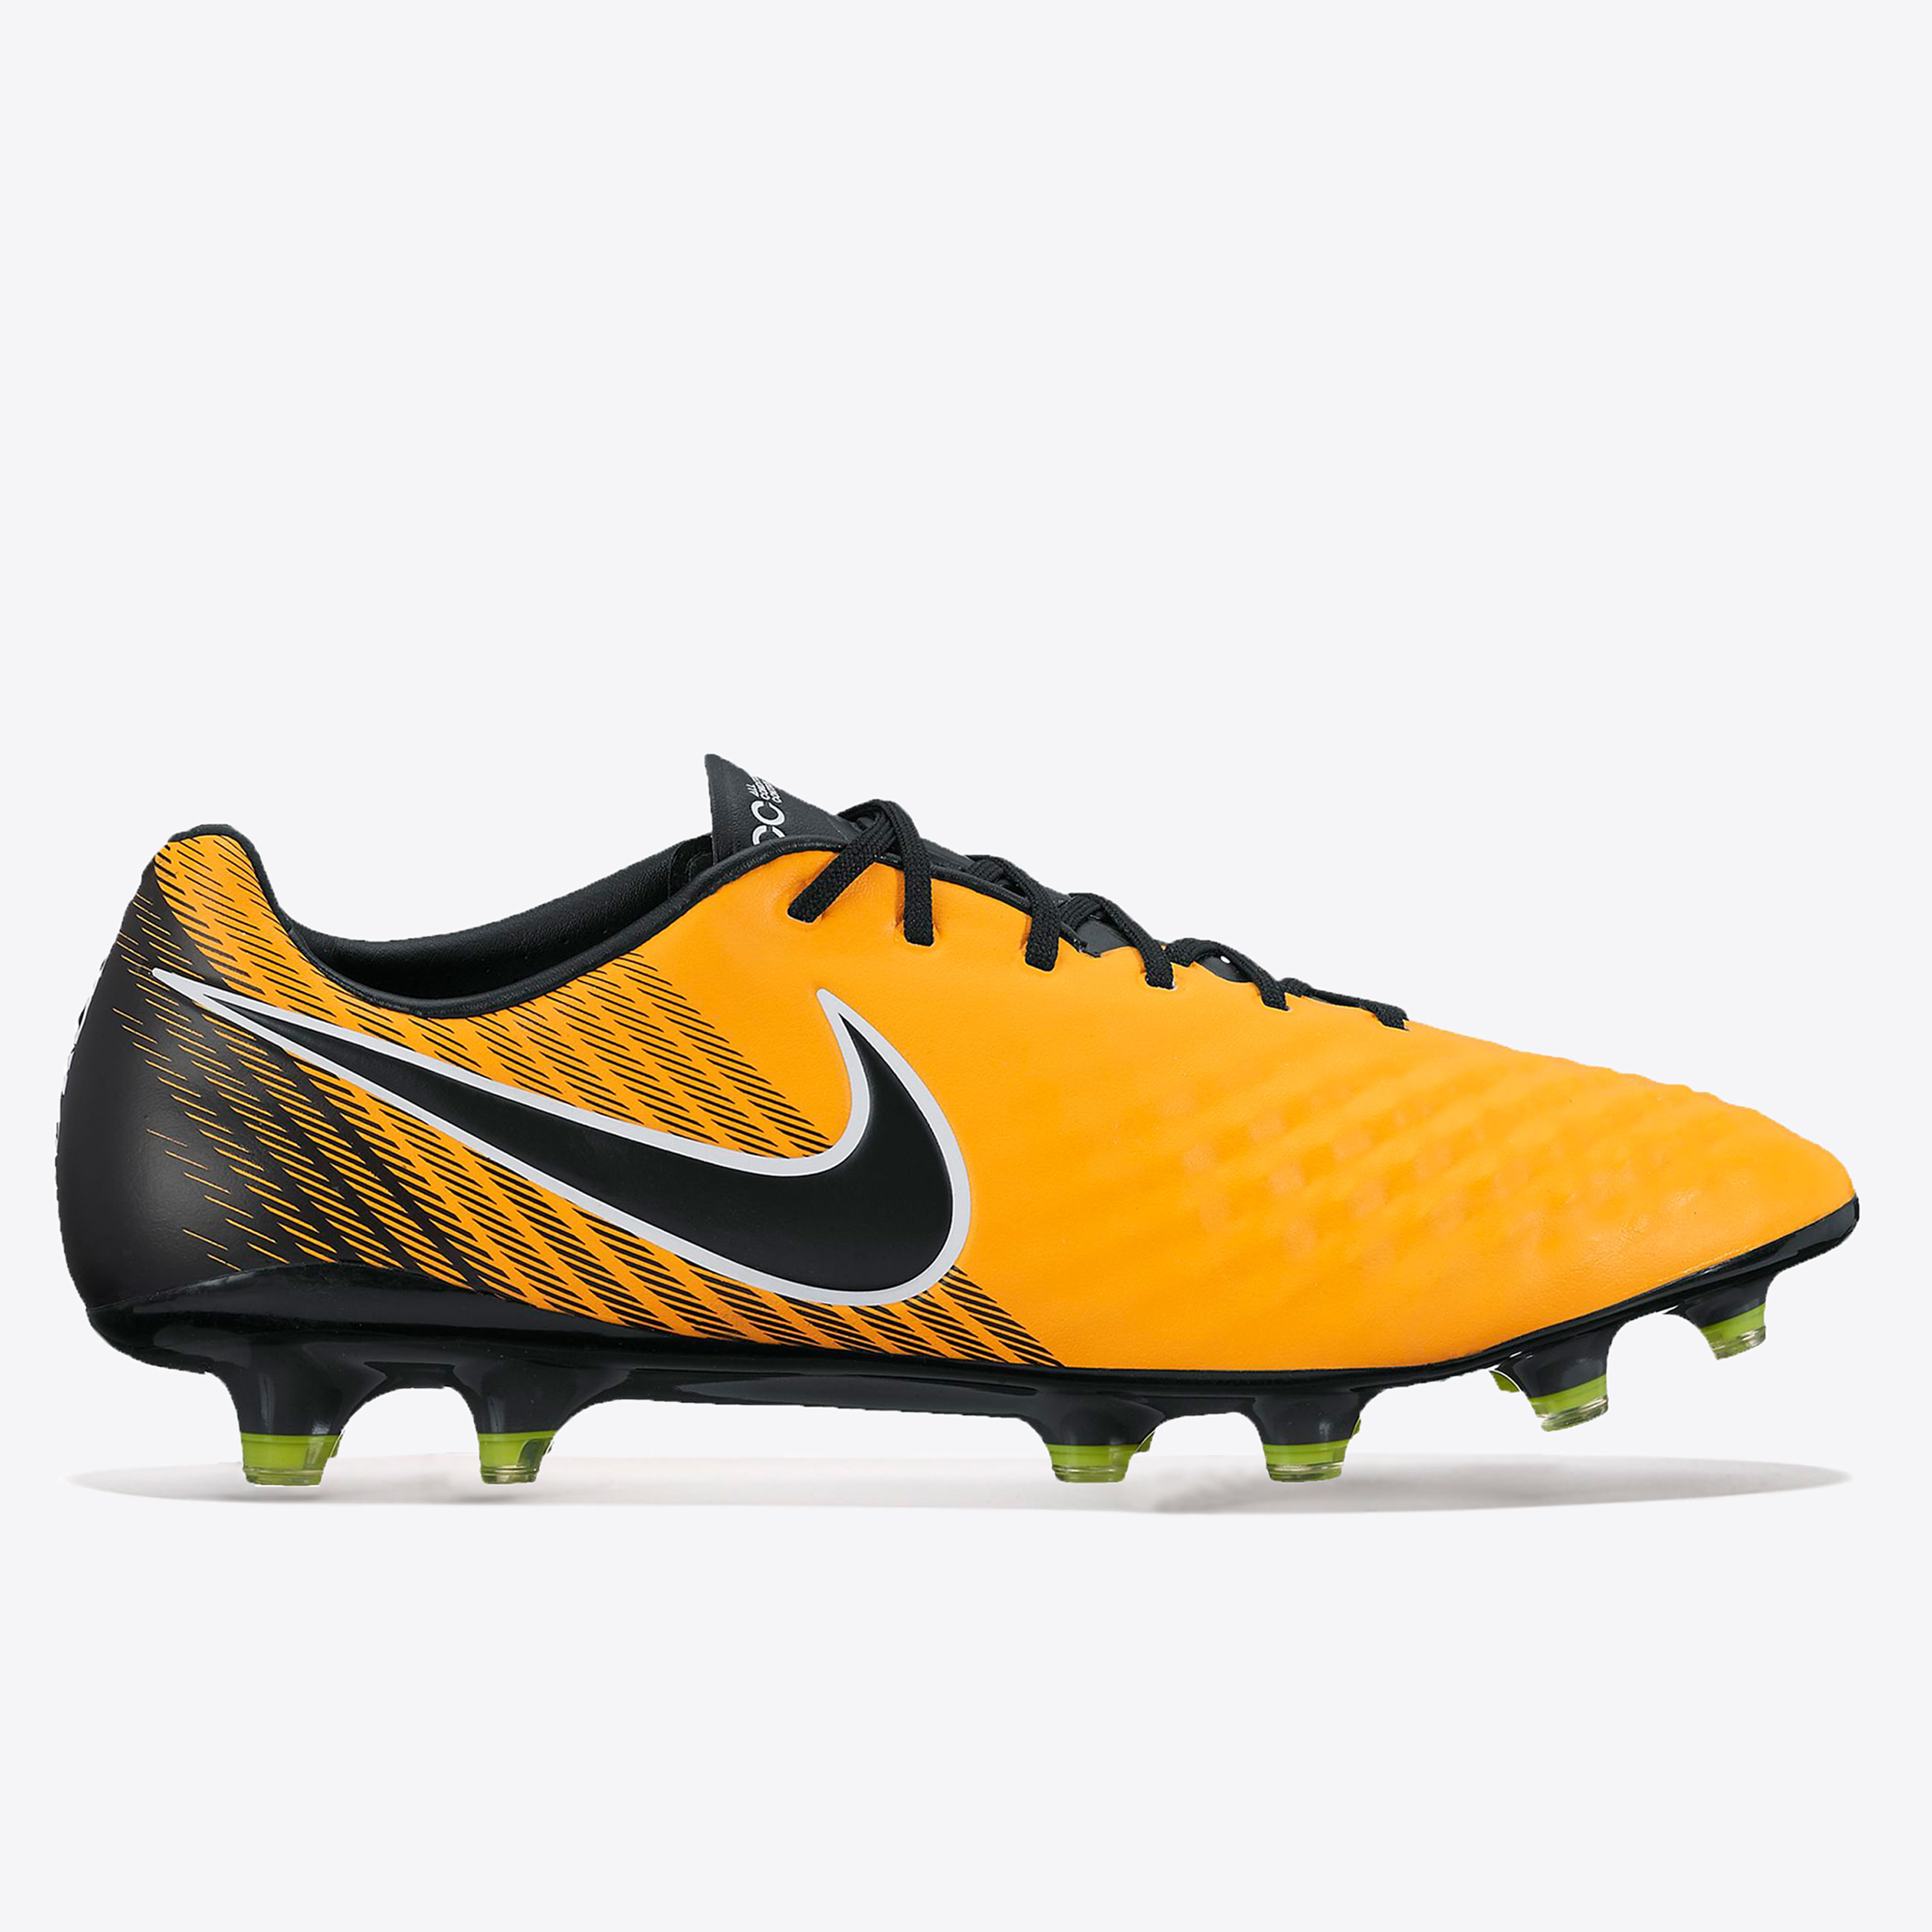 Nike Magista Opus II Firm Ground Football Boots - Laser Orange/Black/W